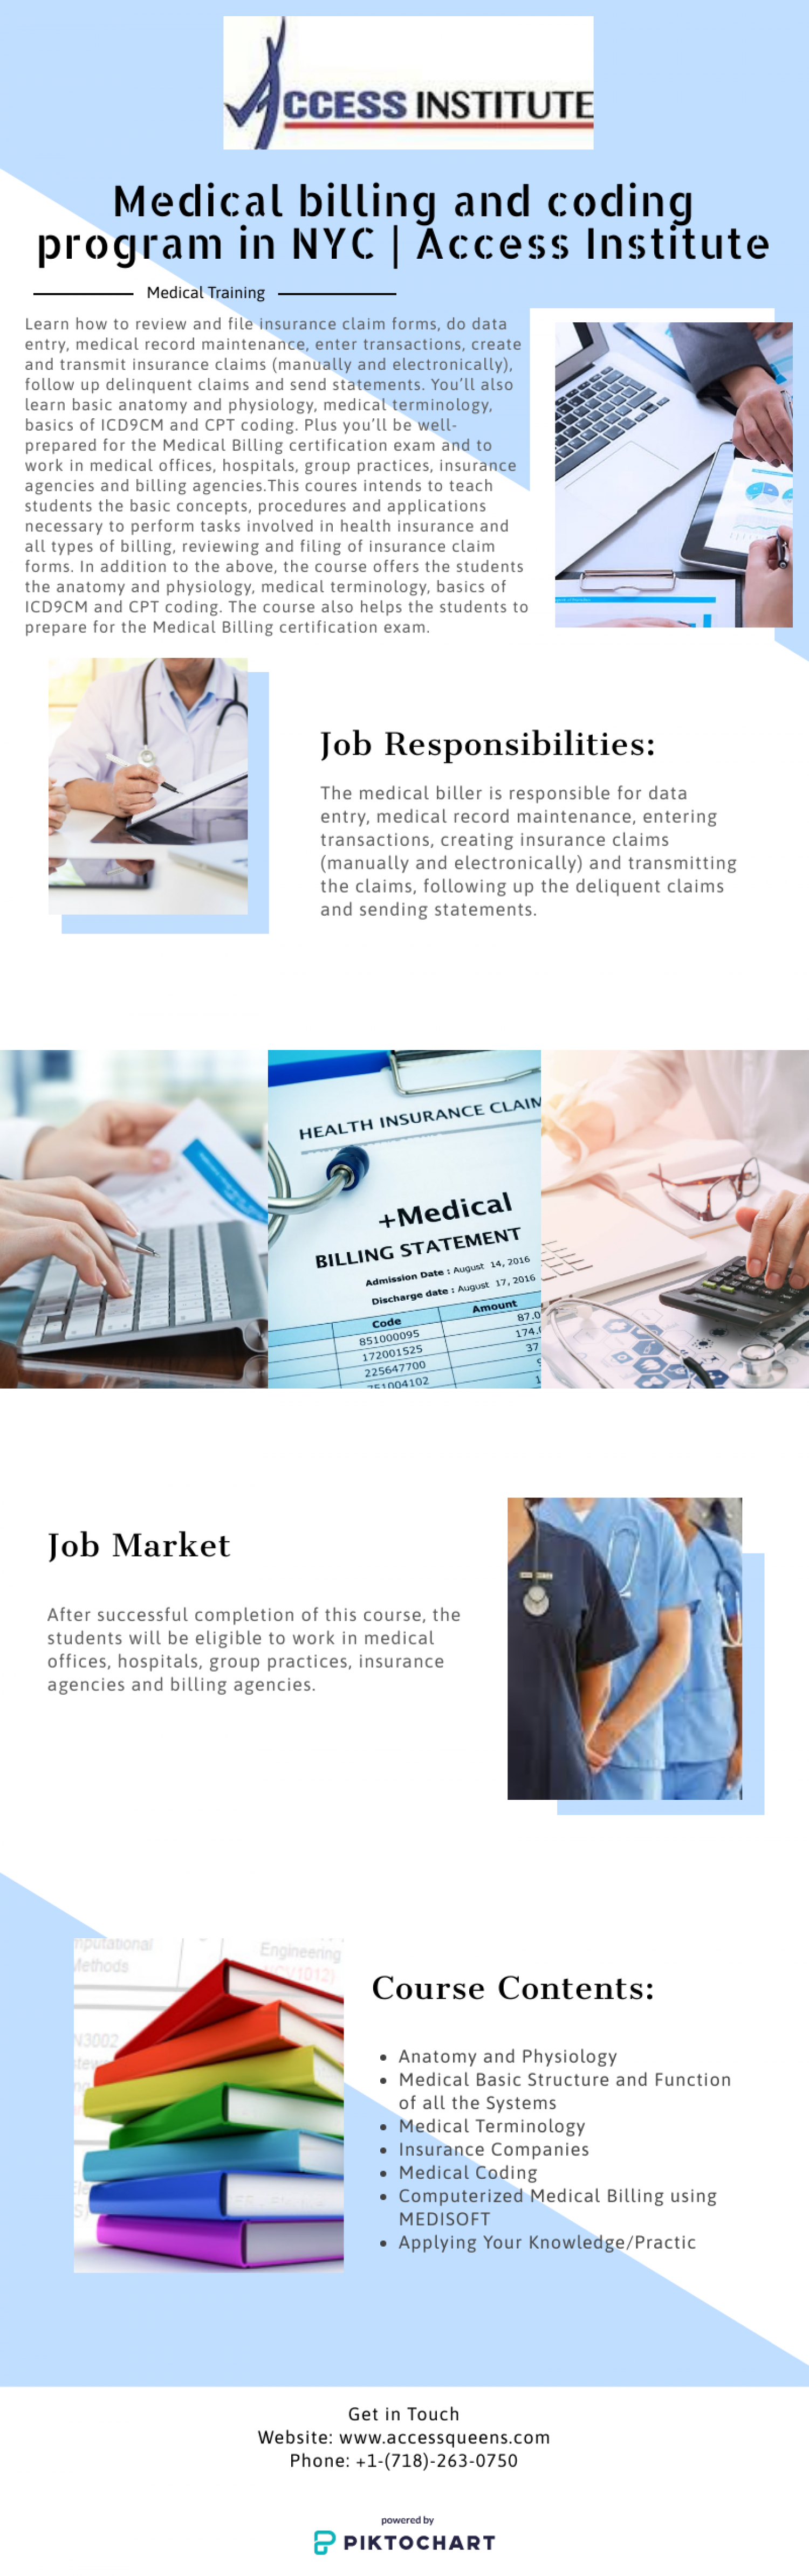 Medical billing and coding program in NYC | Access Institute Infographic